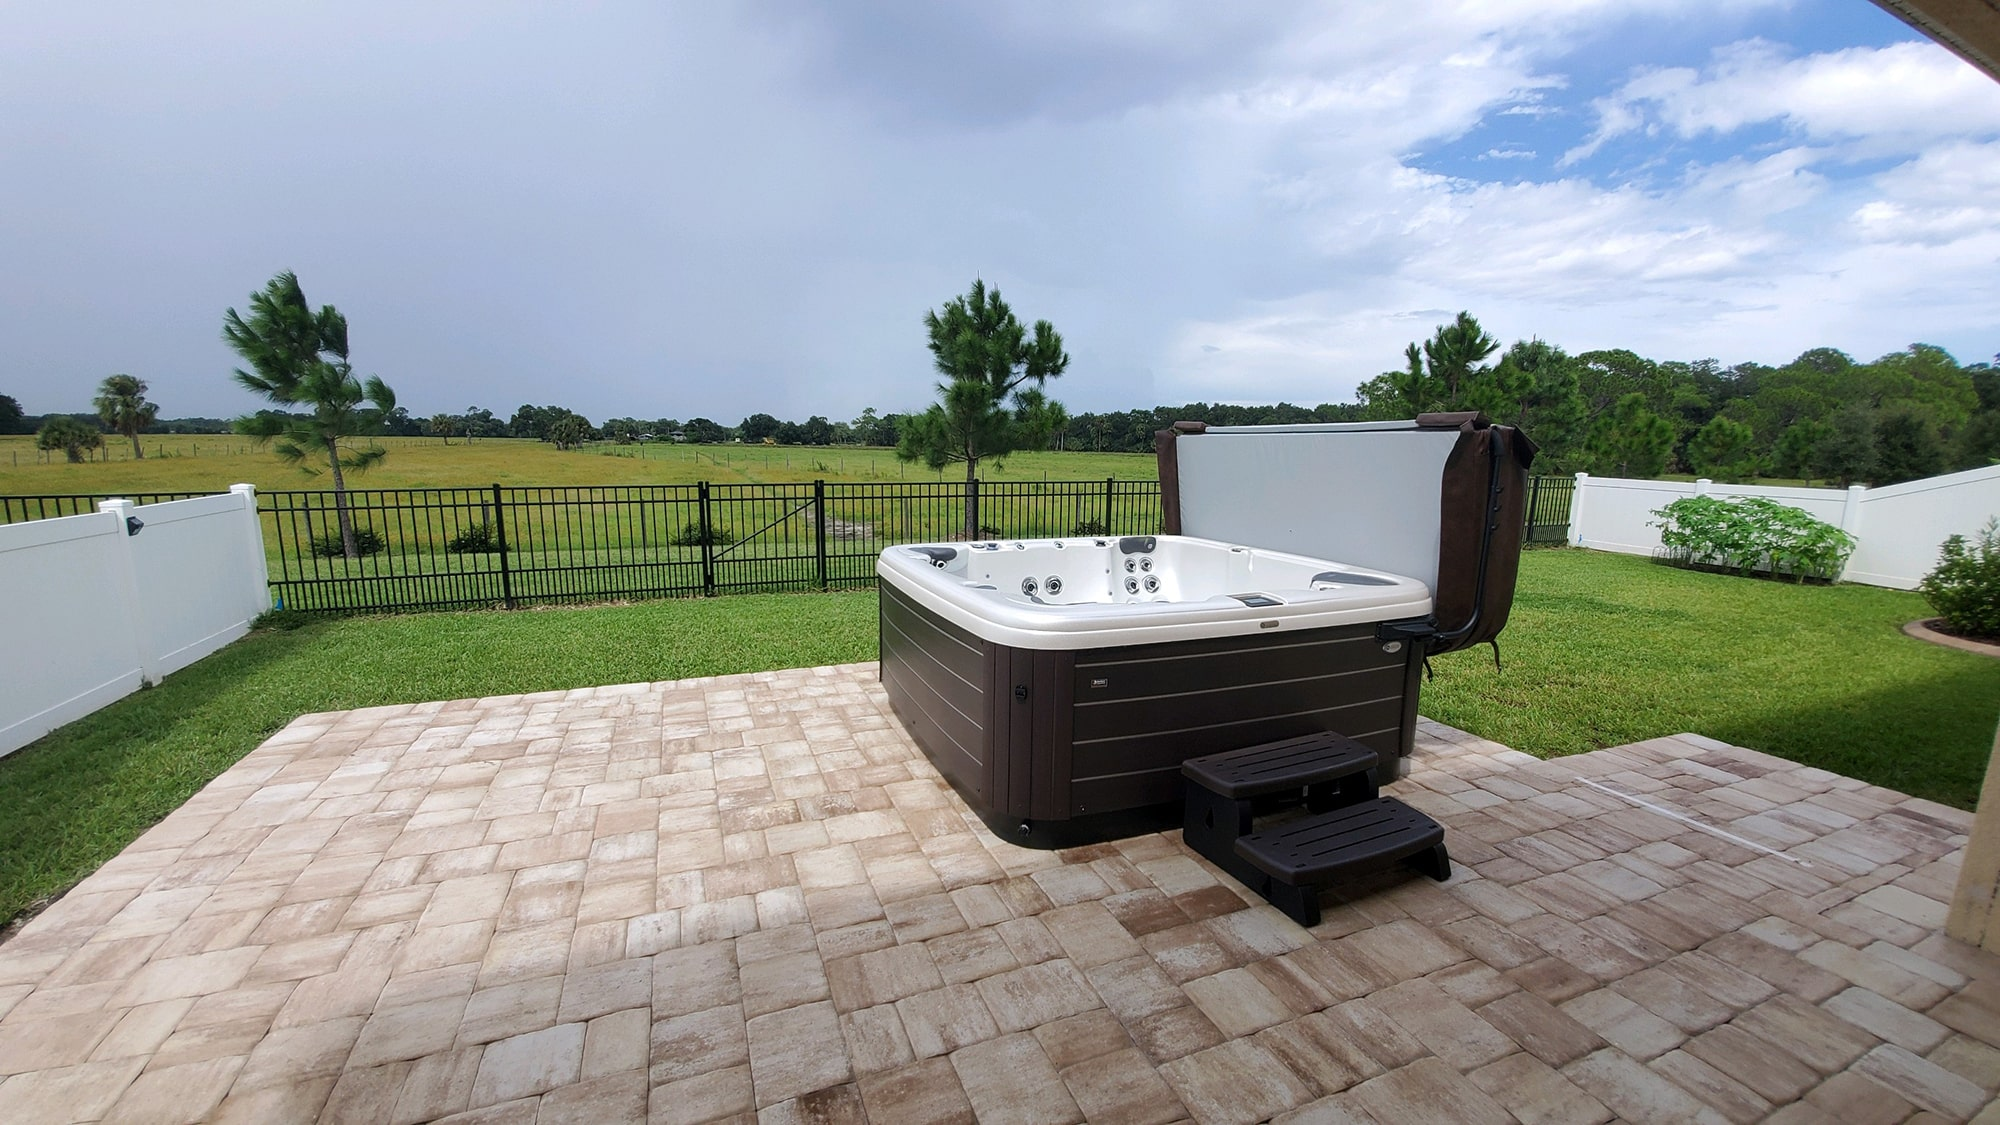 Hot Tub Install Backyard Patio in Sarasota